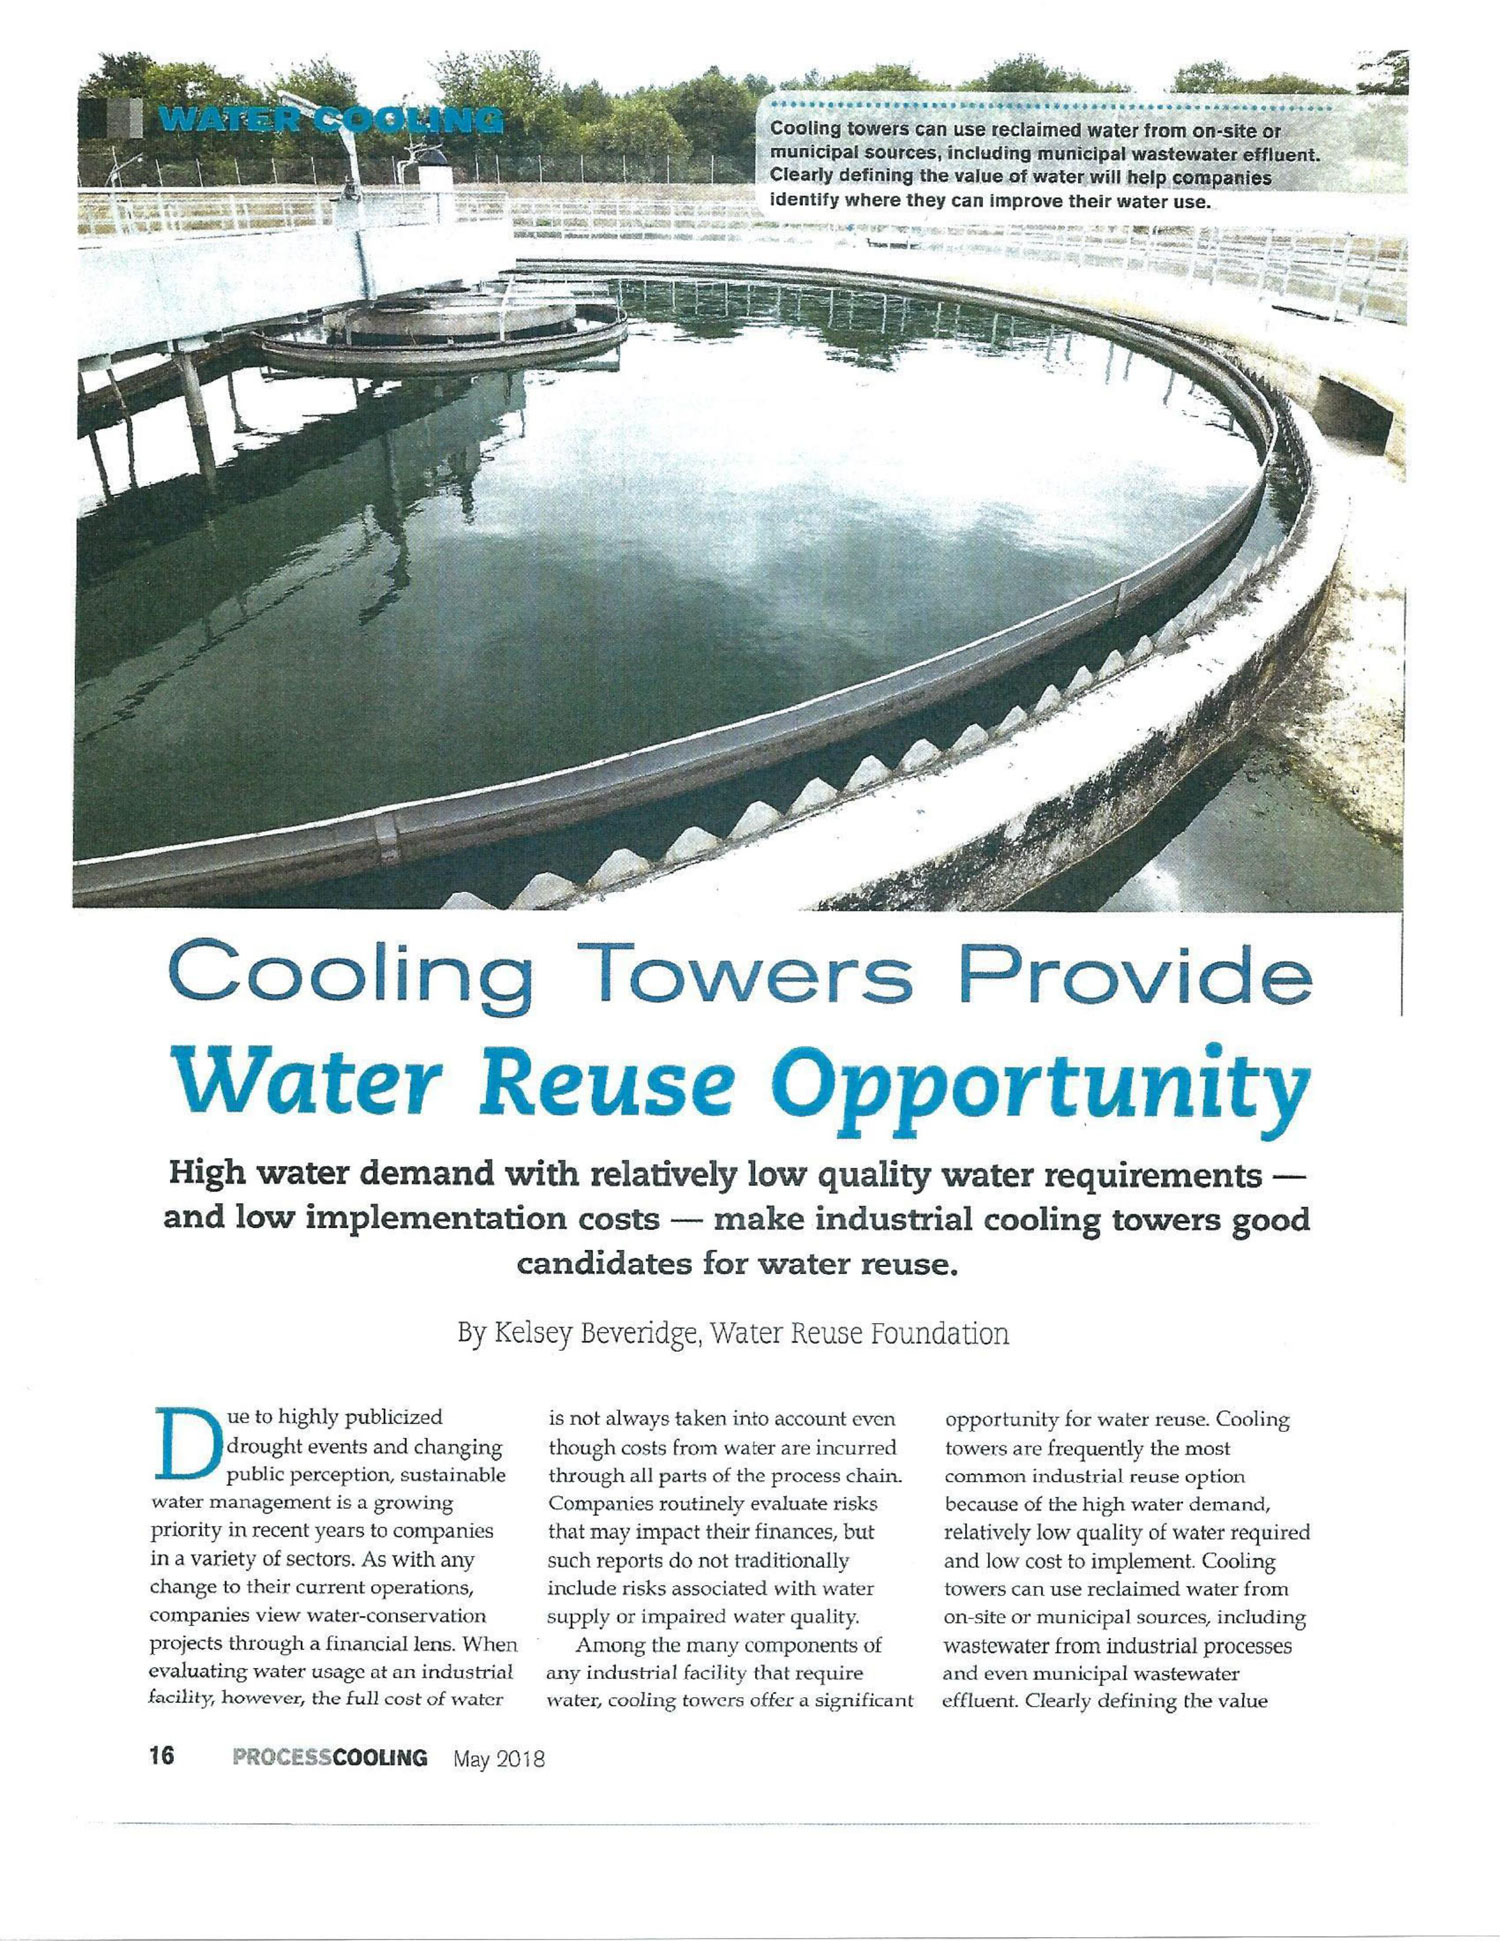 Cooling Towers Provide Water Reuse Opportunity